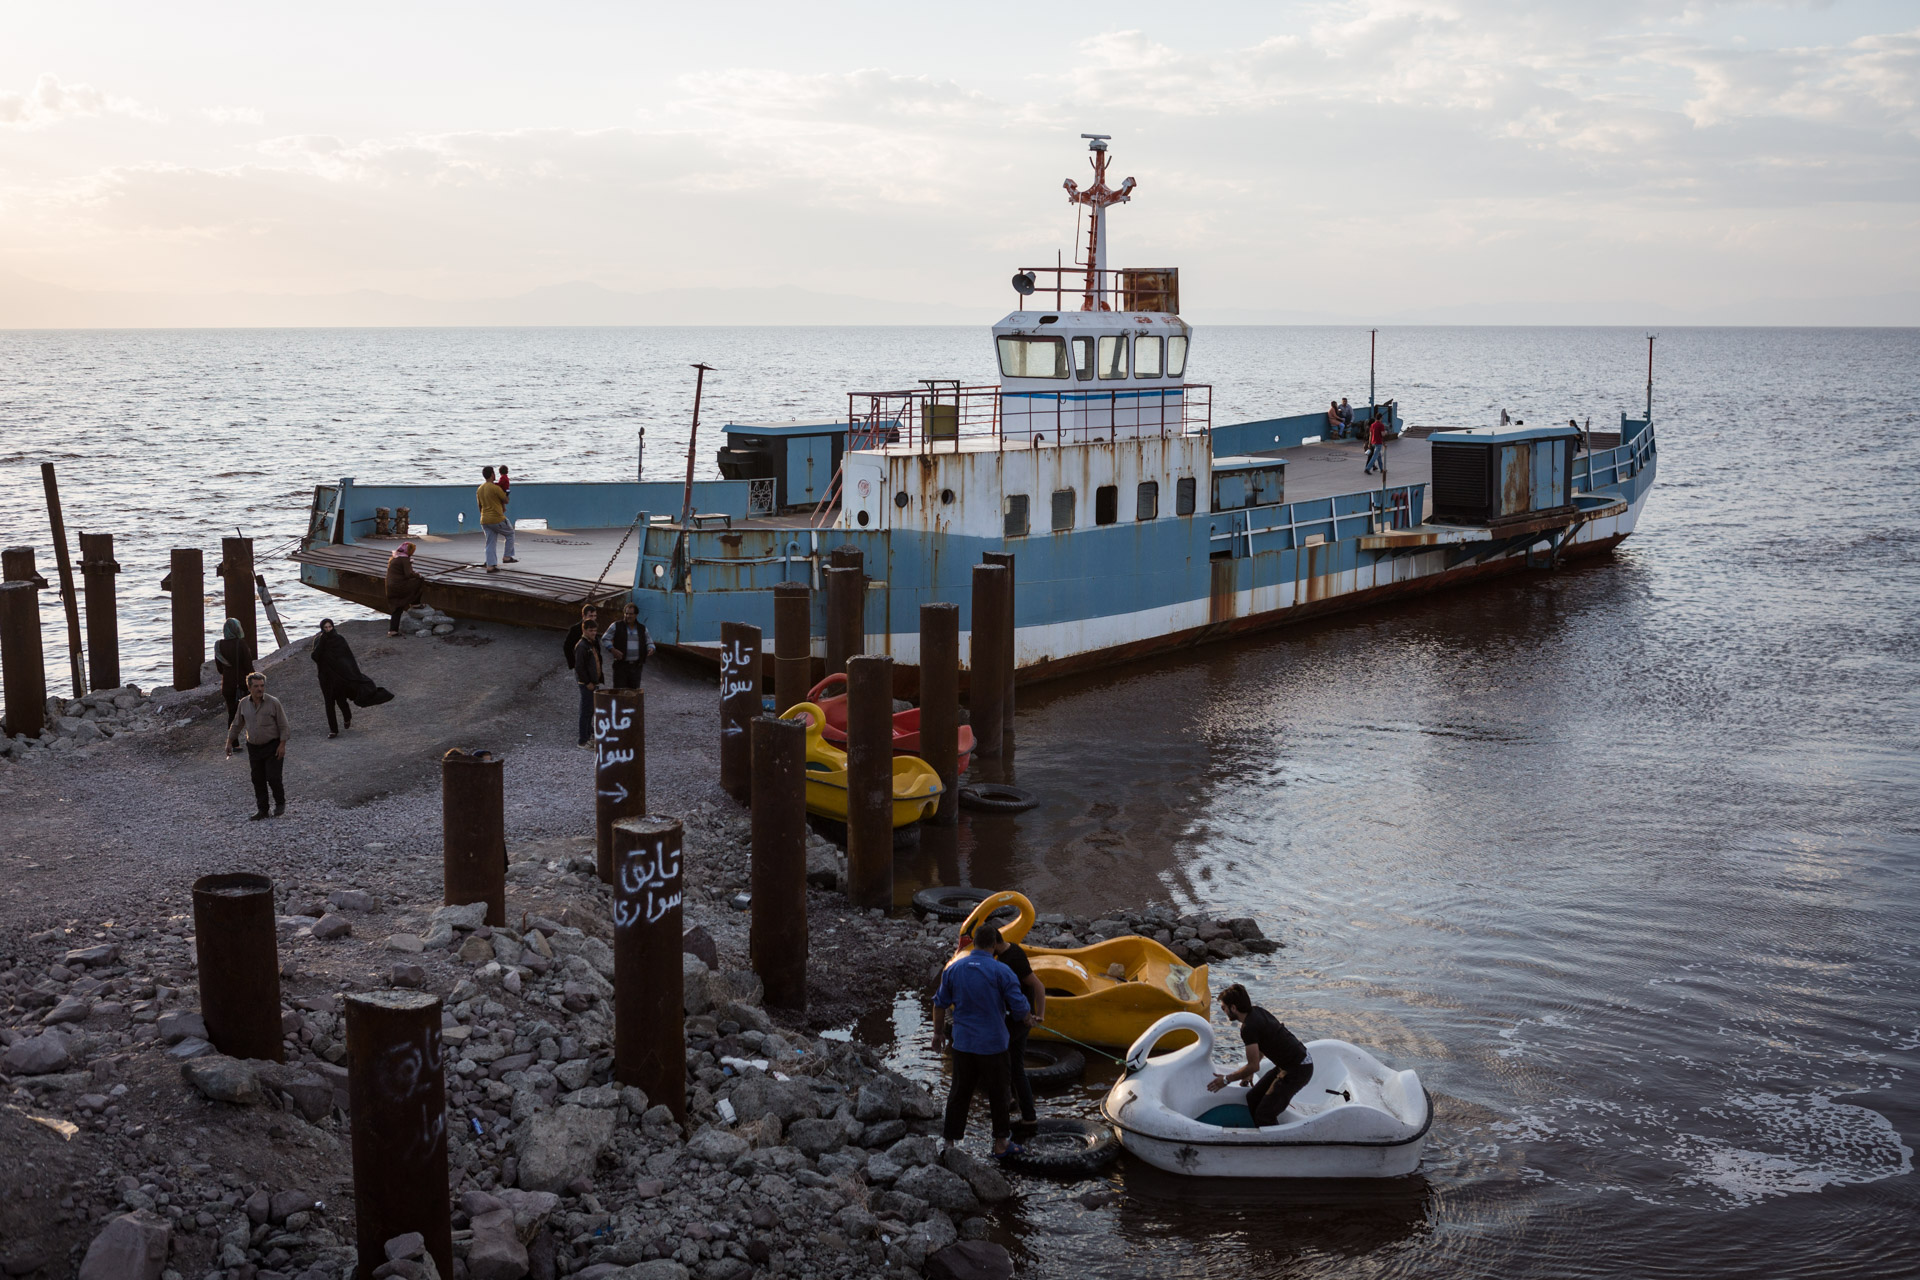 In the evening, people embark an old ferry to await dusk.